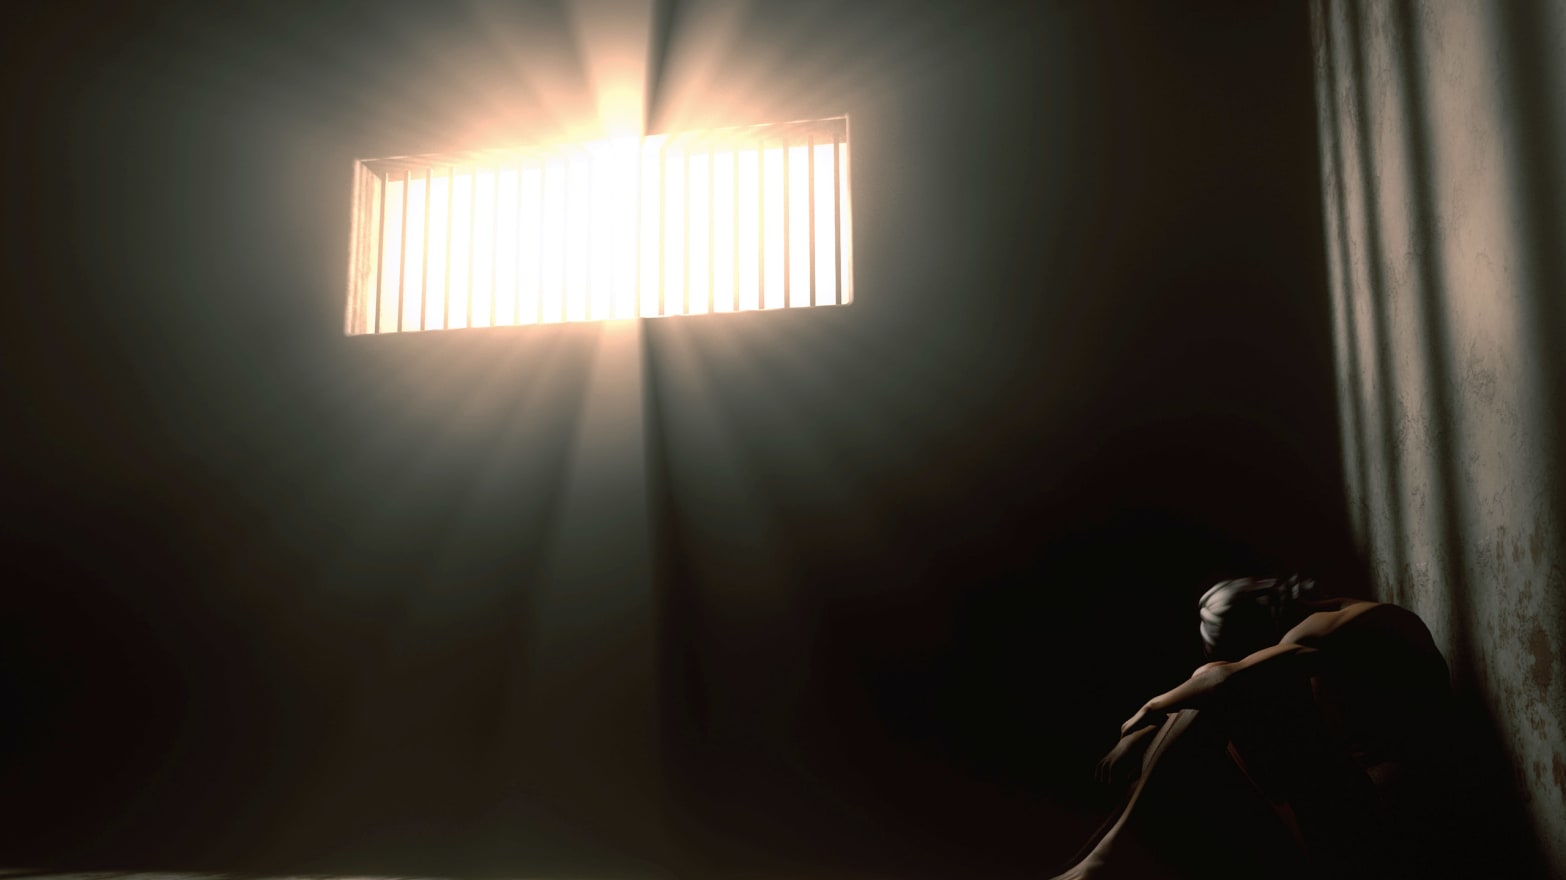 37 Years in Solitary Confinement and Even the State Can't